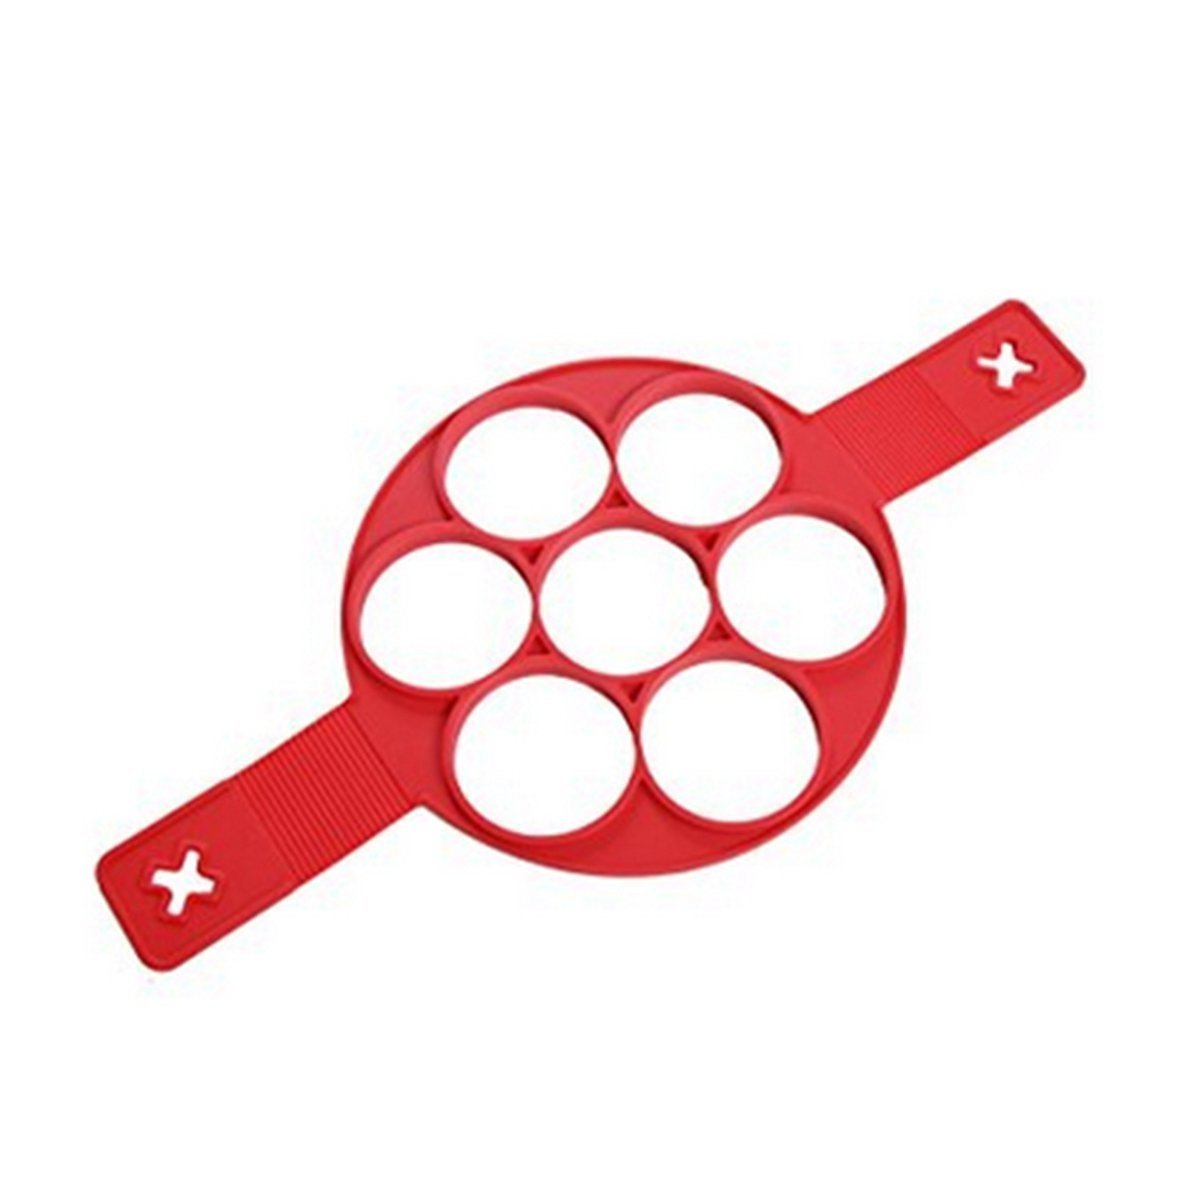 New Upgrade Pancake Molds Ring Fried Egg Mold Reusable Silicone Non Stick Pancake Maker Egg Ring Quickly Make a Cake for You to Save Valuable Time(Red)